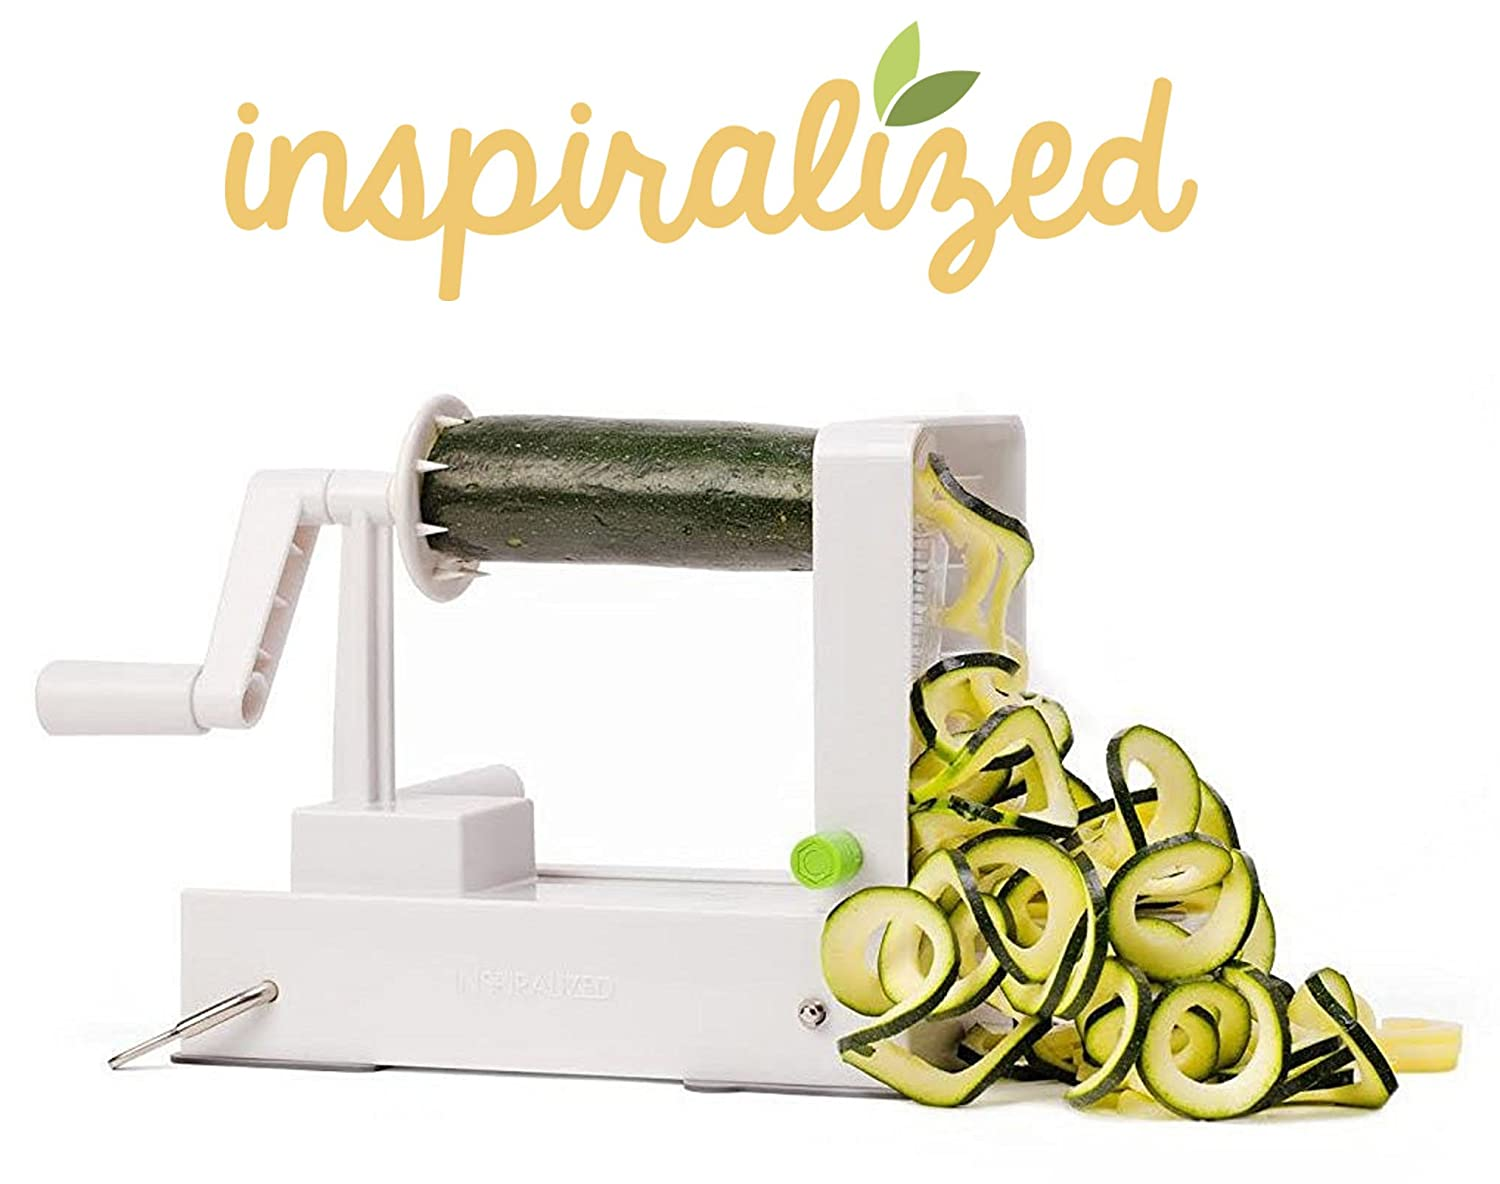 The Inspiralizer: Official vegetable spiralizer of Inspiralized SP100-BX